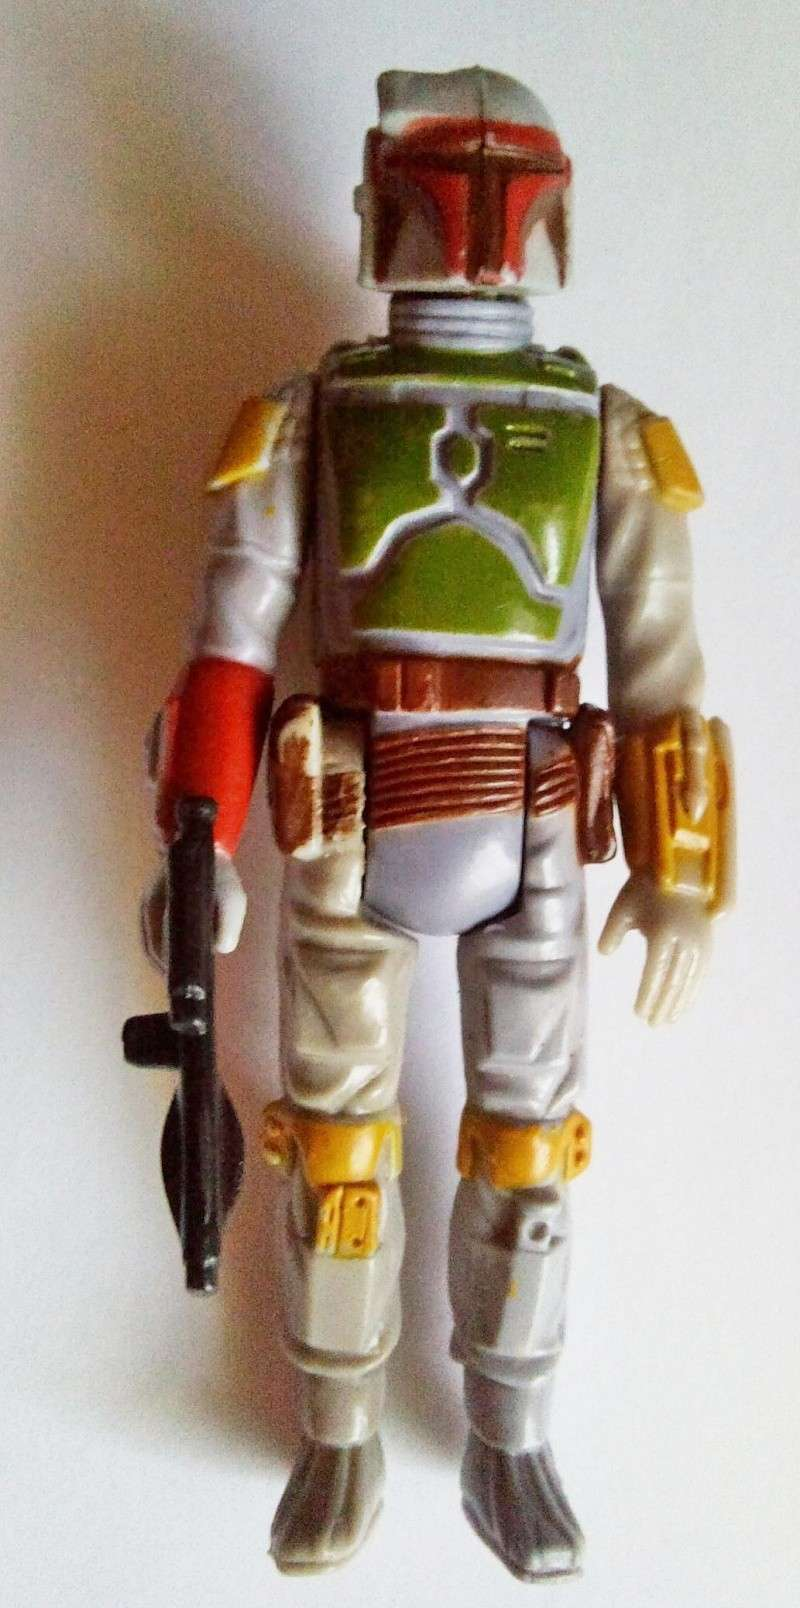 Boba Fett Loose variant – In depth discussion about discoloration and yellowing - Page 3 Boba_g13